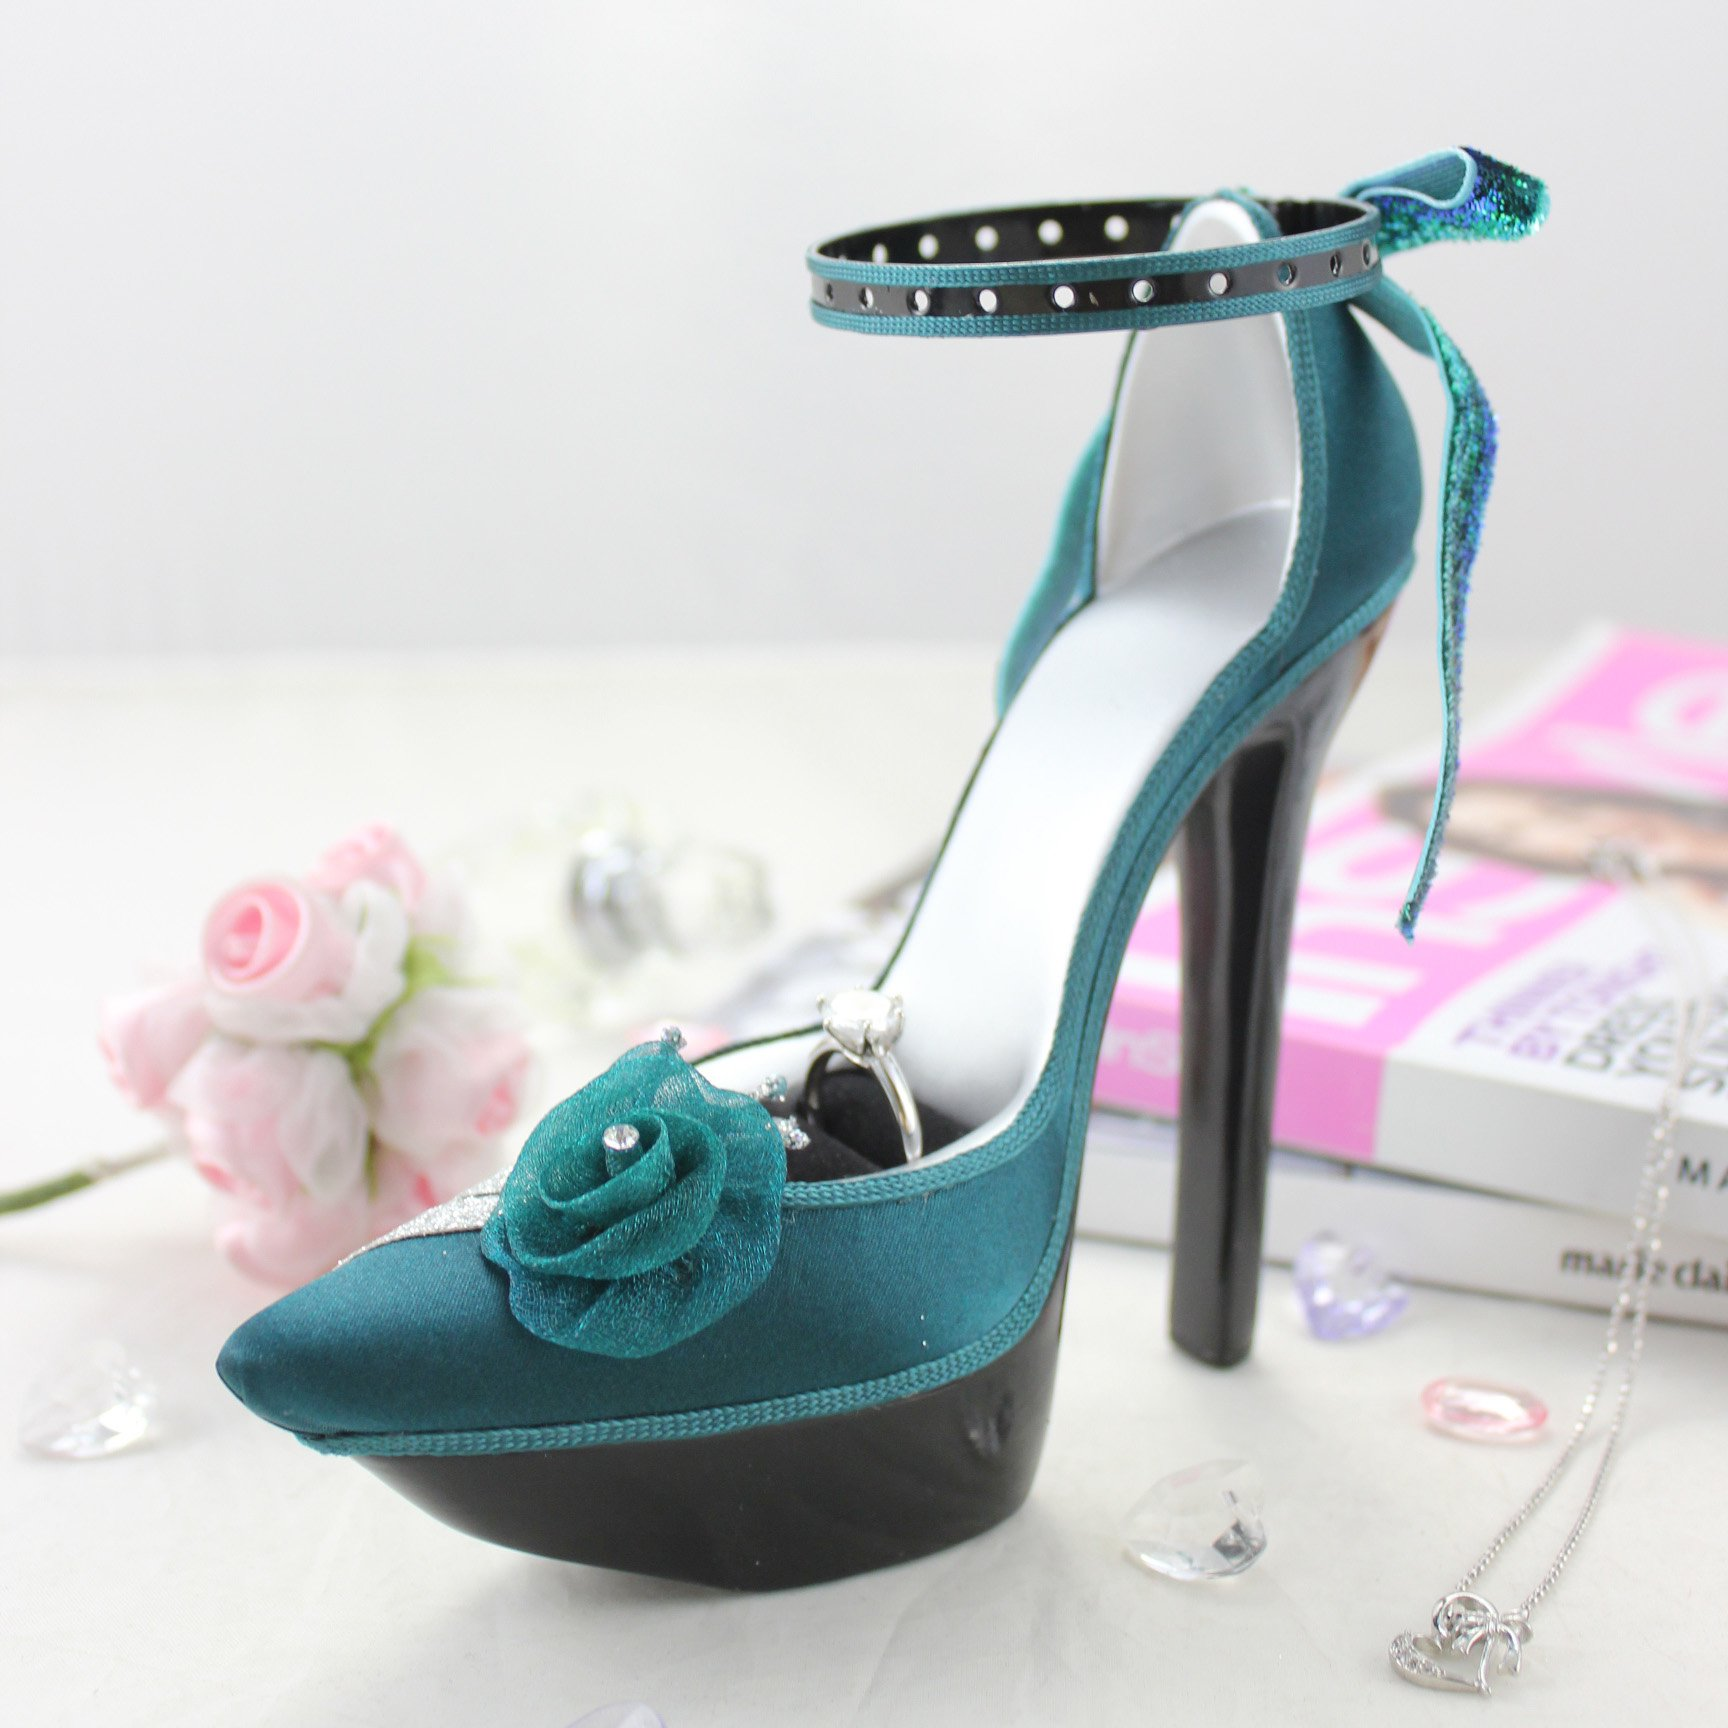 Elegant Rose Platform Shoe Ring and Earring Holder - Green - 7W x 4H in.